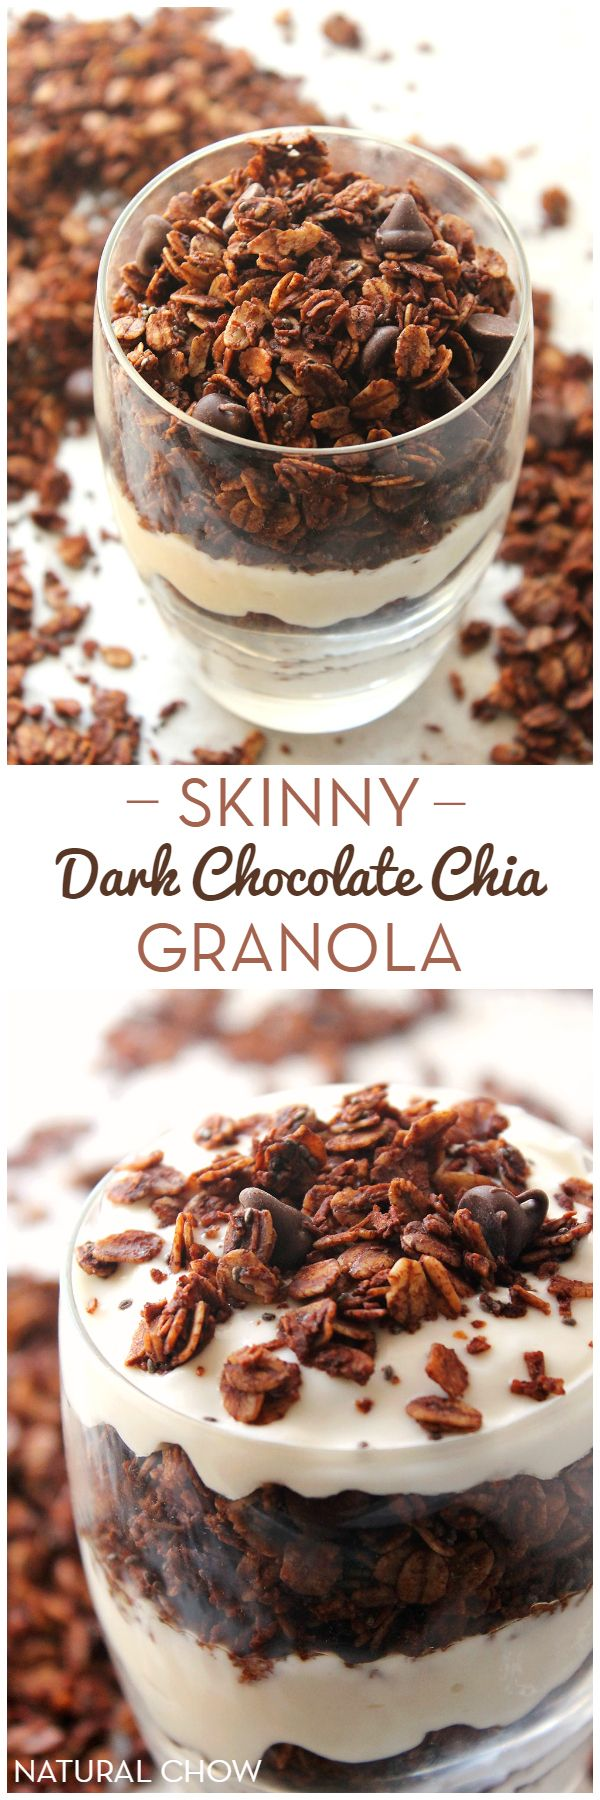 Who says breakfast can't be indulgent? This skinny dark chocolate chia granola…